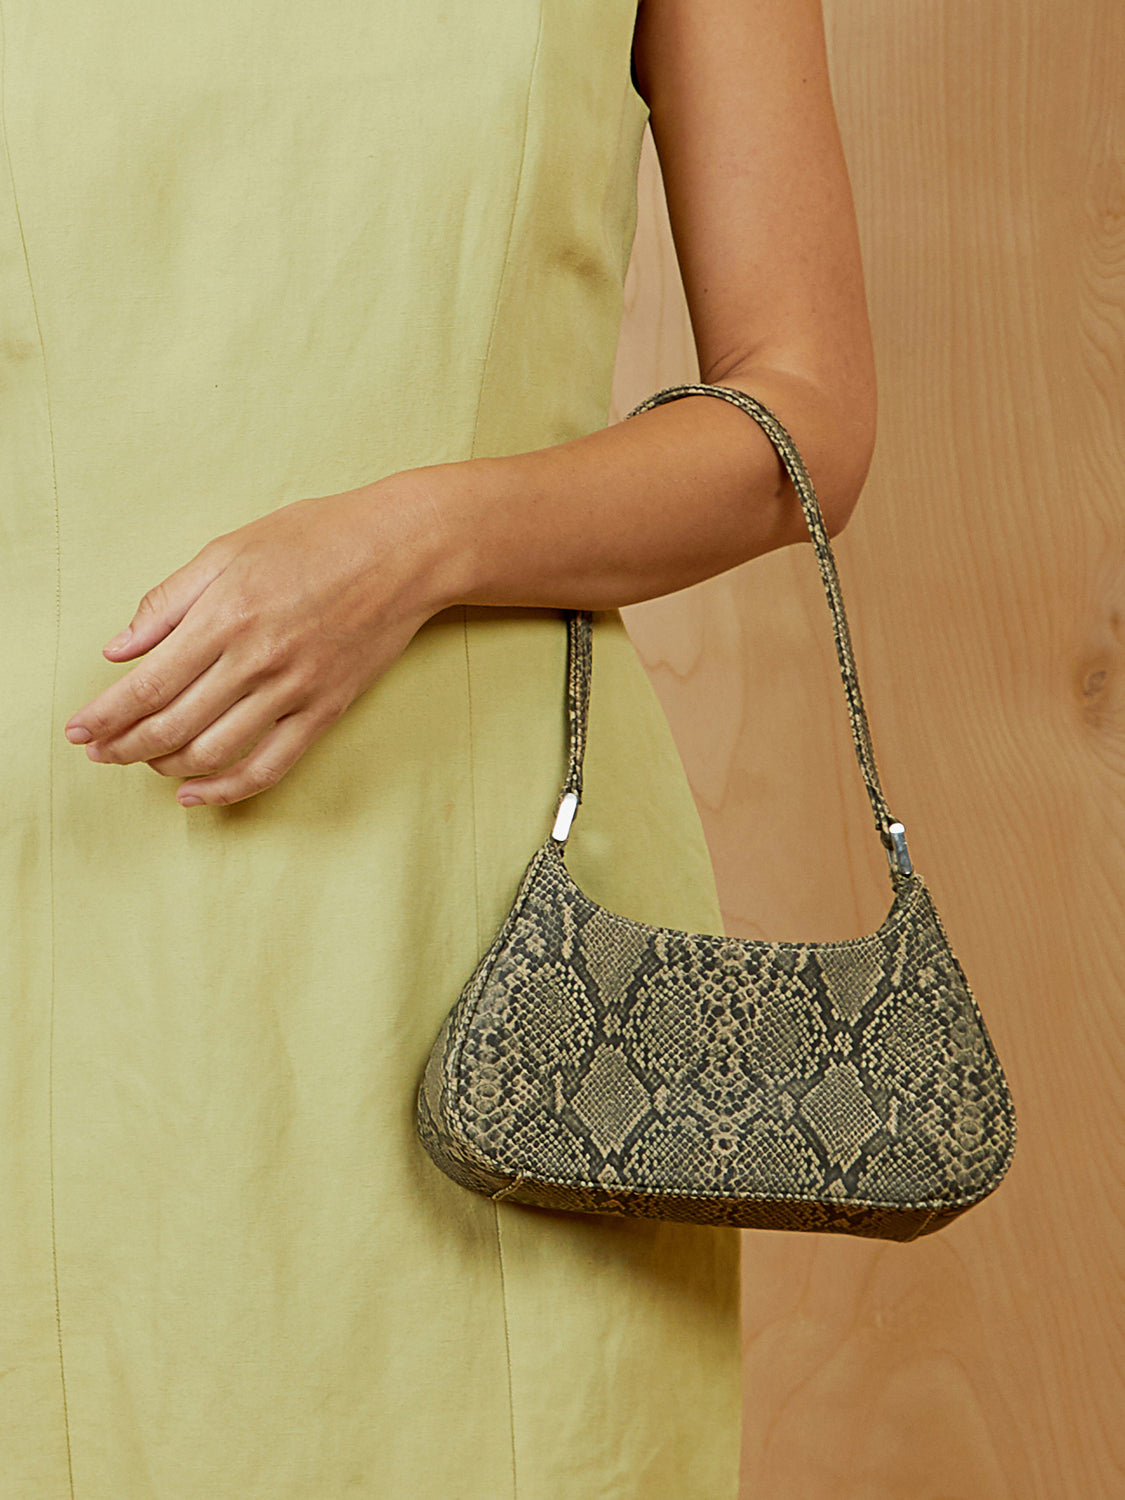 Mini Liz Claiborne Snakeskin Purse